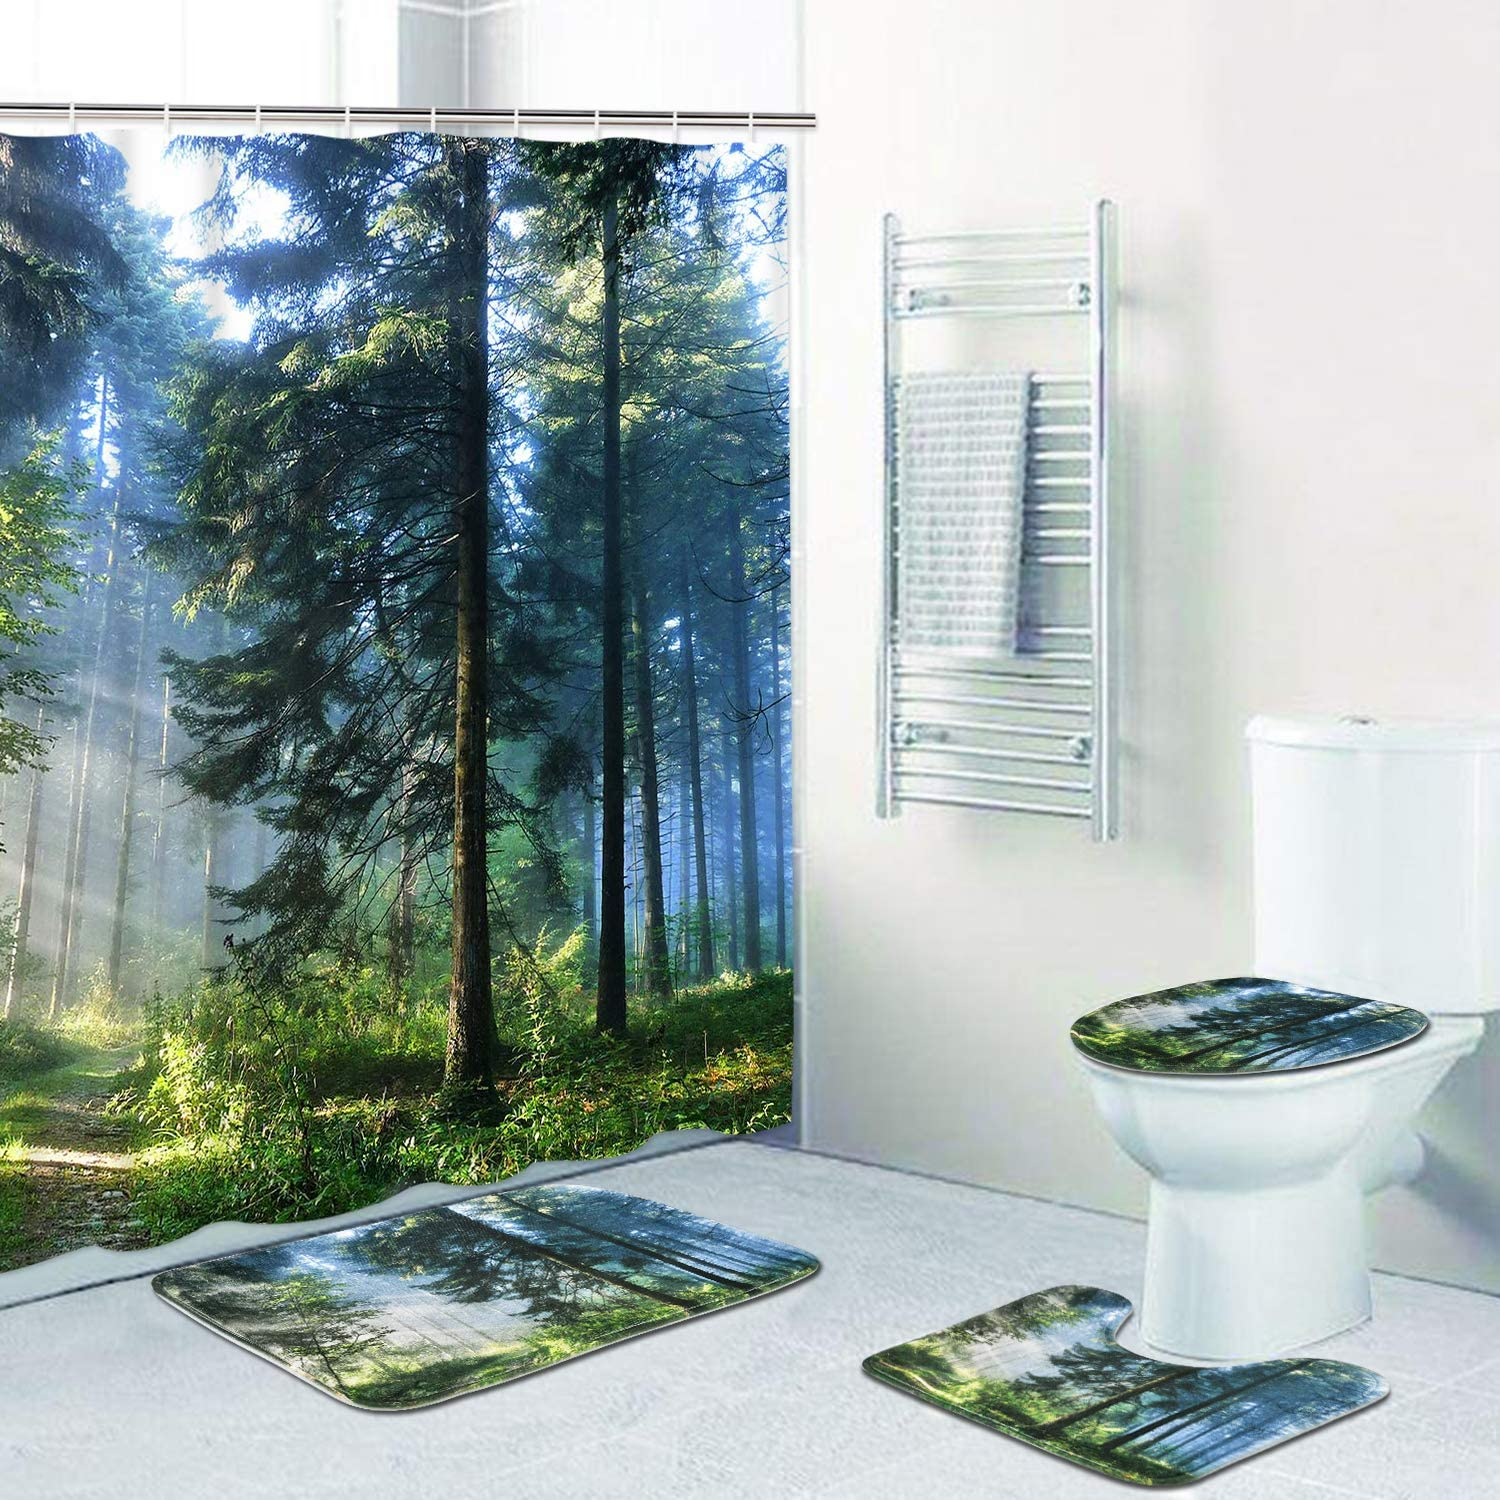 Misty Forest Shower Curtain Sets with Non-Slip Rugs, Toilet Lid Cover and Bath Mat, Sunshine Trees Shower Curtains with 12 Hook s, Durable Waterproof Bath Curtain